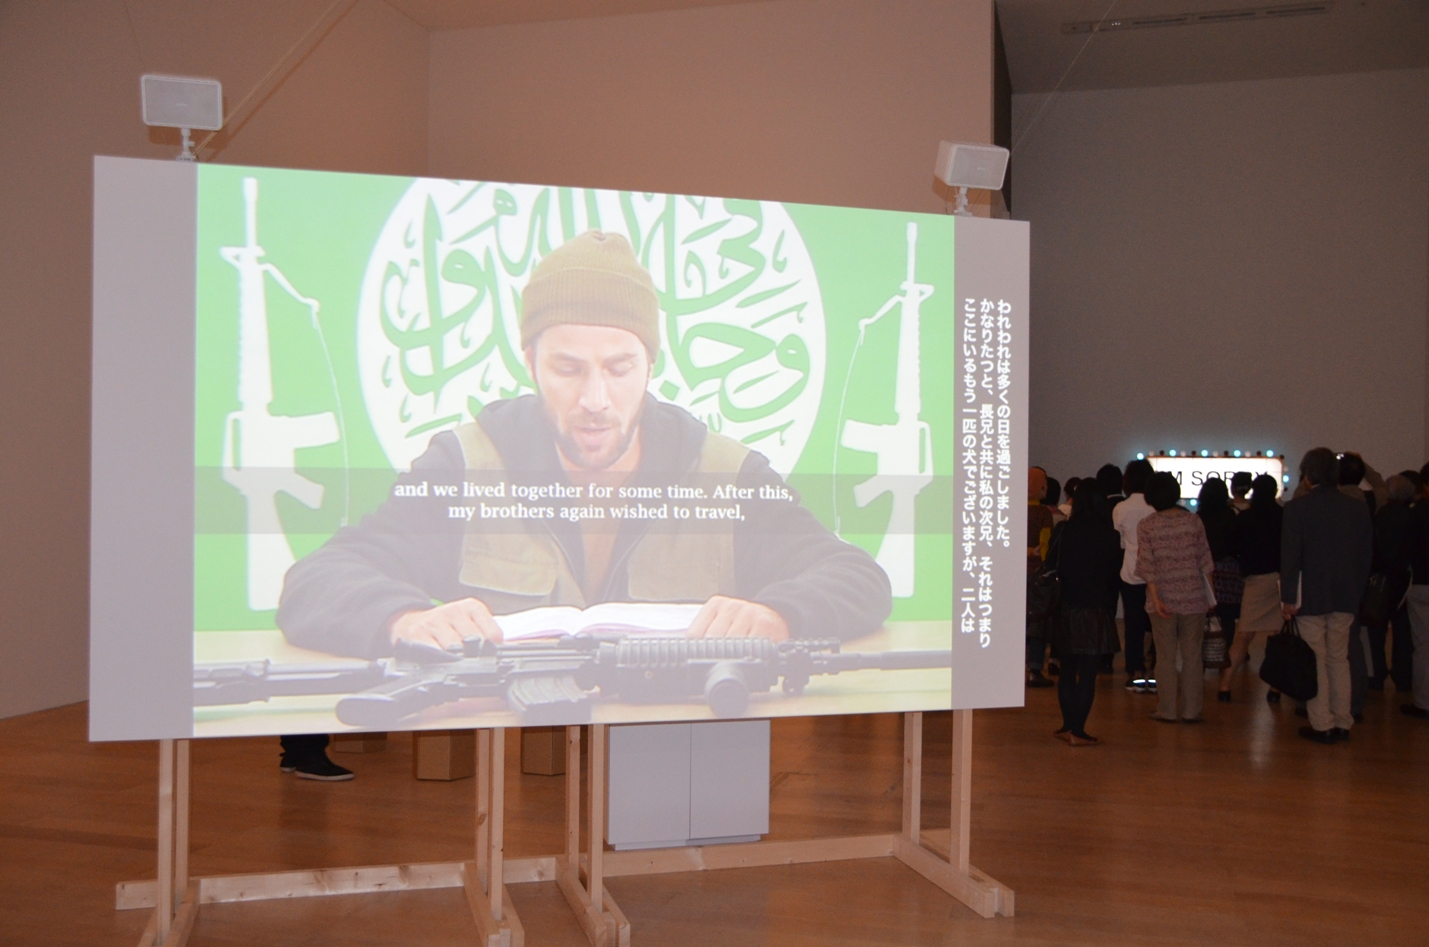 Sharif Waked, To be continued, 2009 - The Artist and Mori Art Museum (photo Mohammed Kazem)